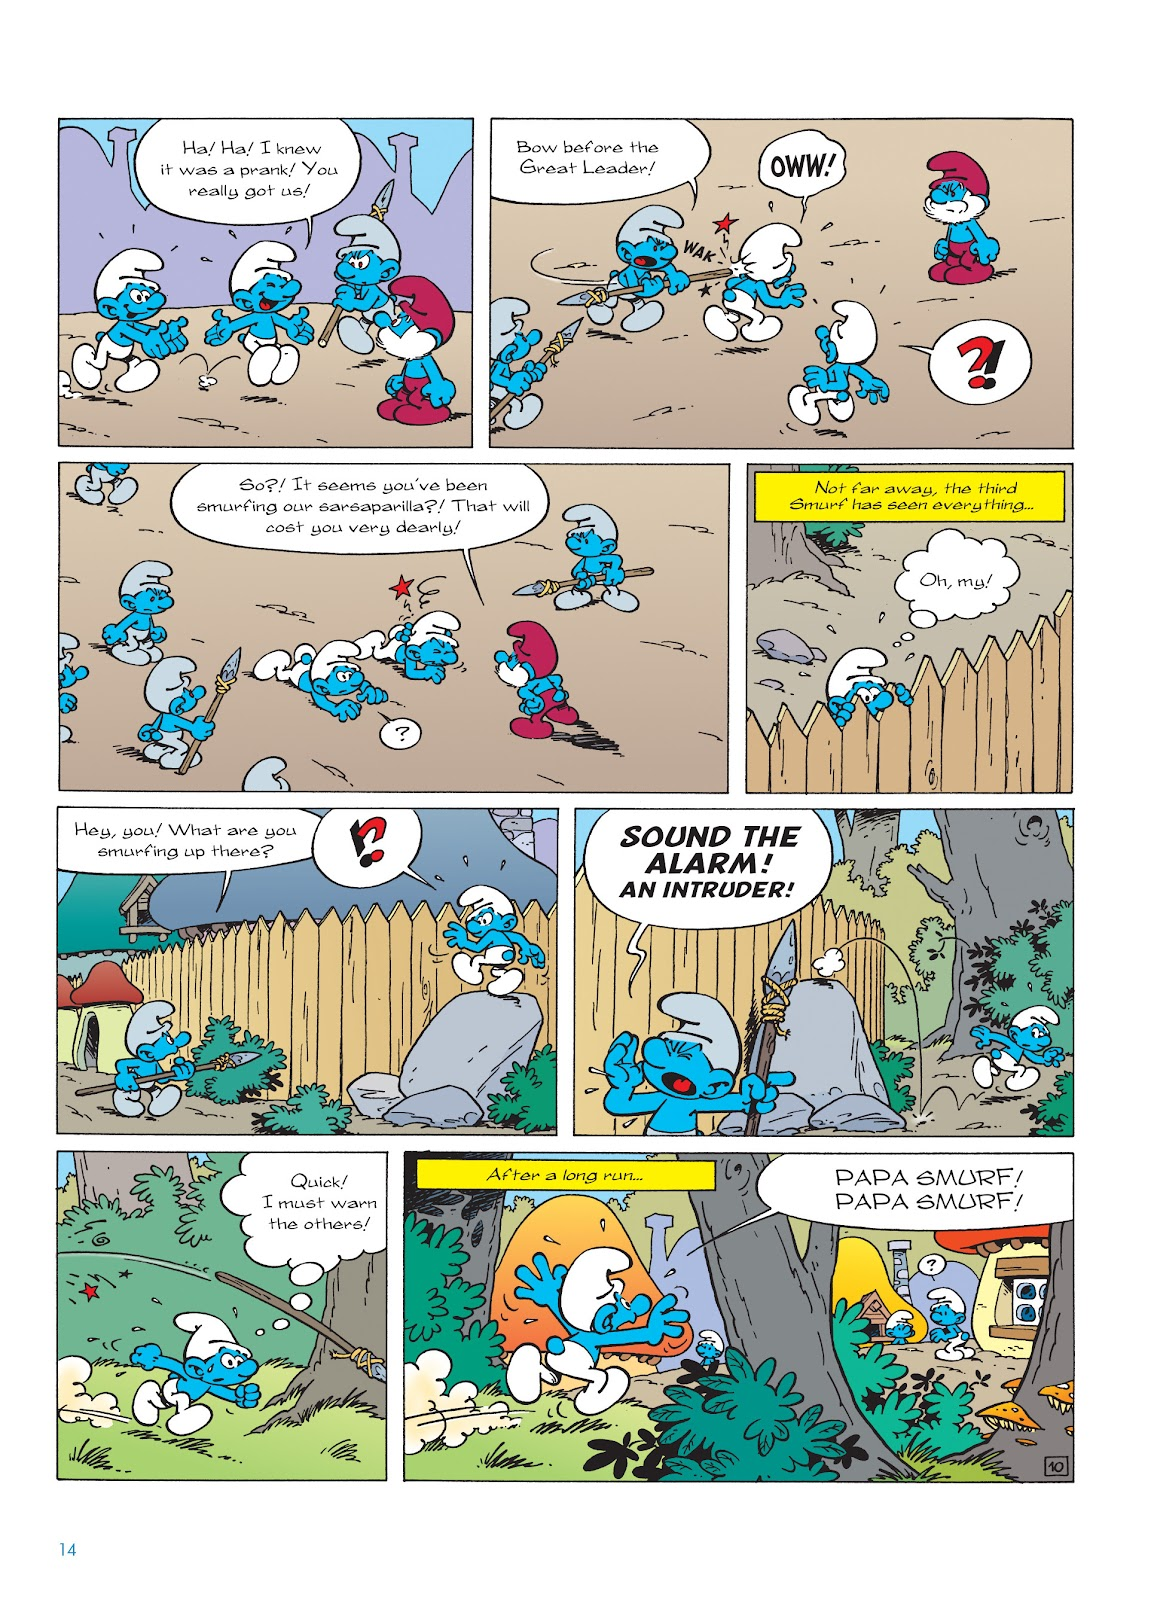 Read online The Smurfs comic -  Issue #22 - 15